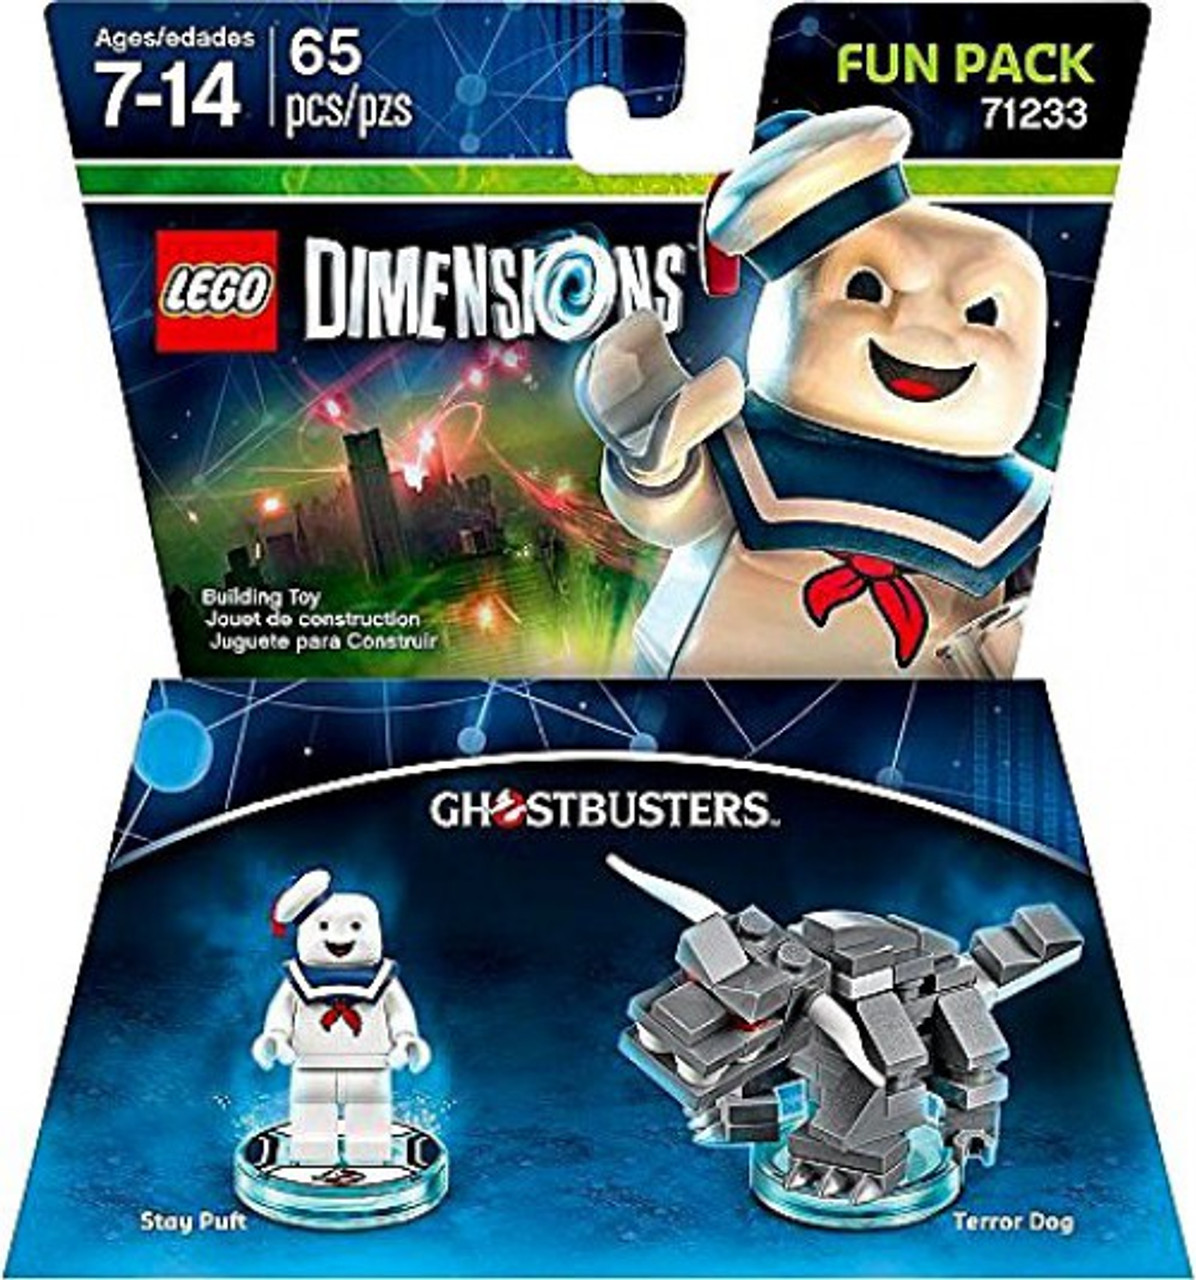 LEGO Dimensions Ghostbusters Stay Puft Terror Dog Fun Pack 71233 ...